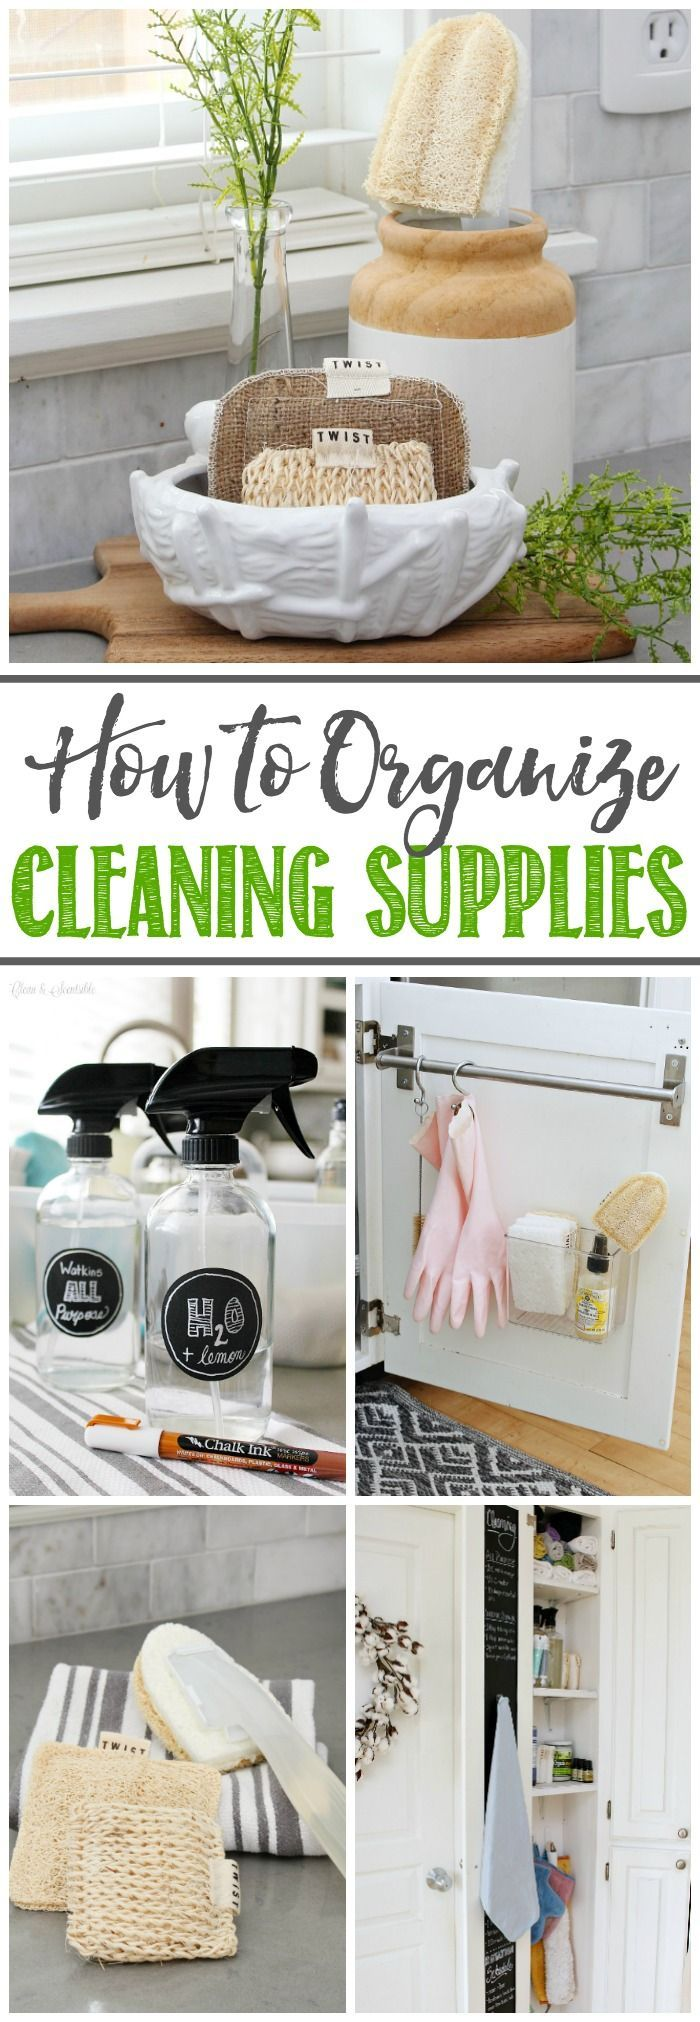 Great ideas for organizing cleaning supplies for quick and easy cleaning.